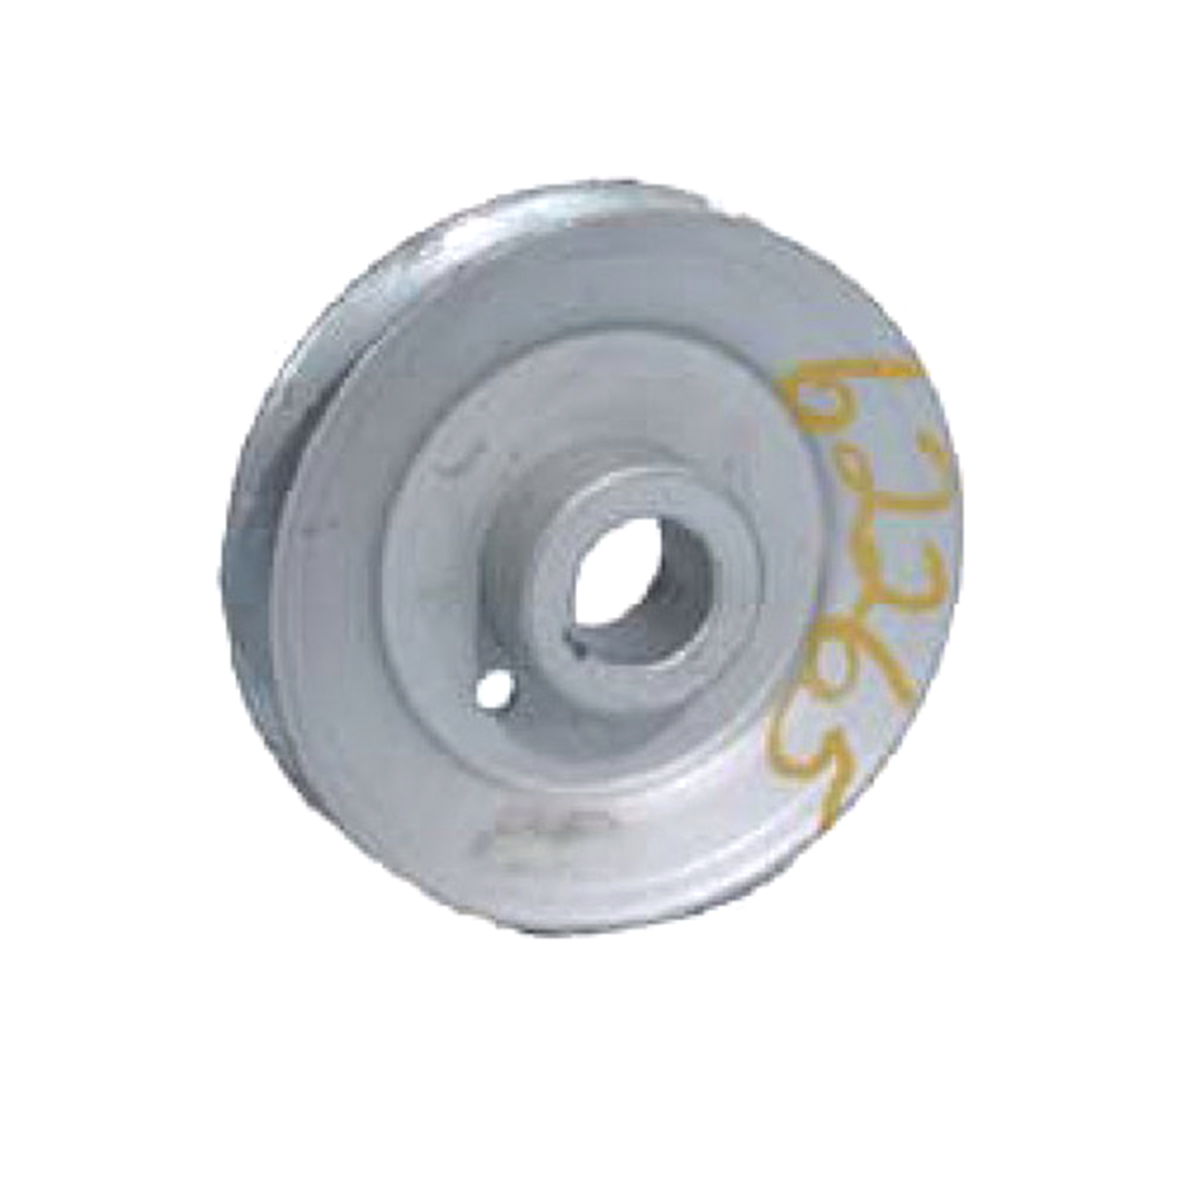 62265 Dixie Chopper Pulley 1